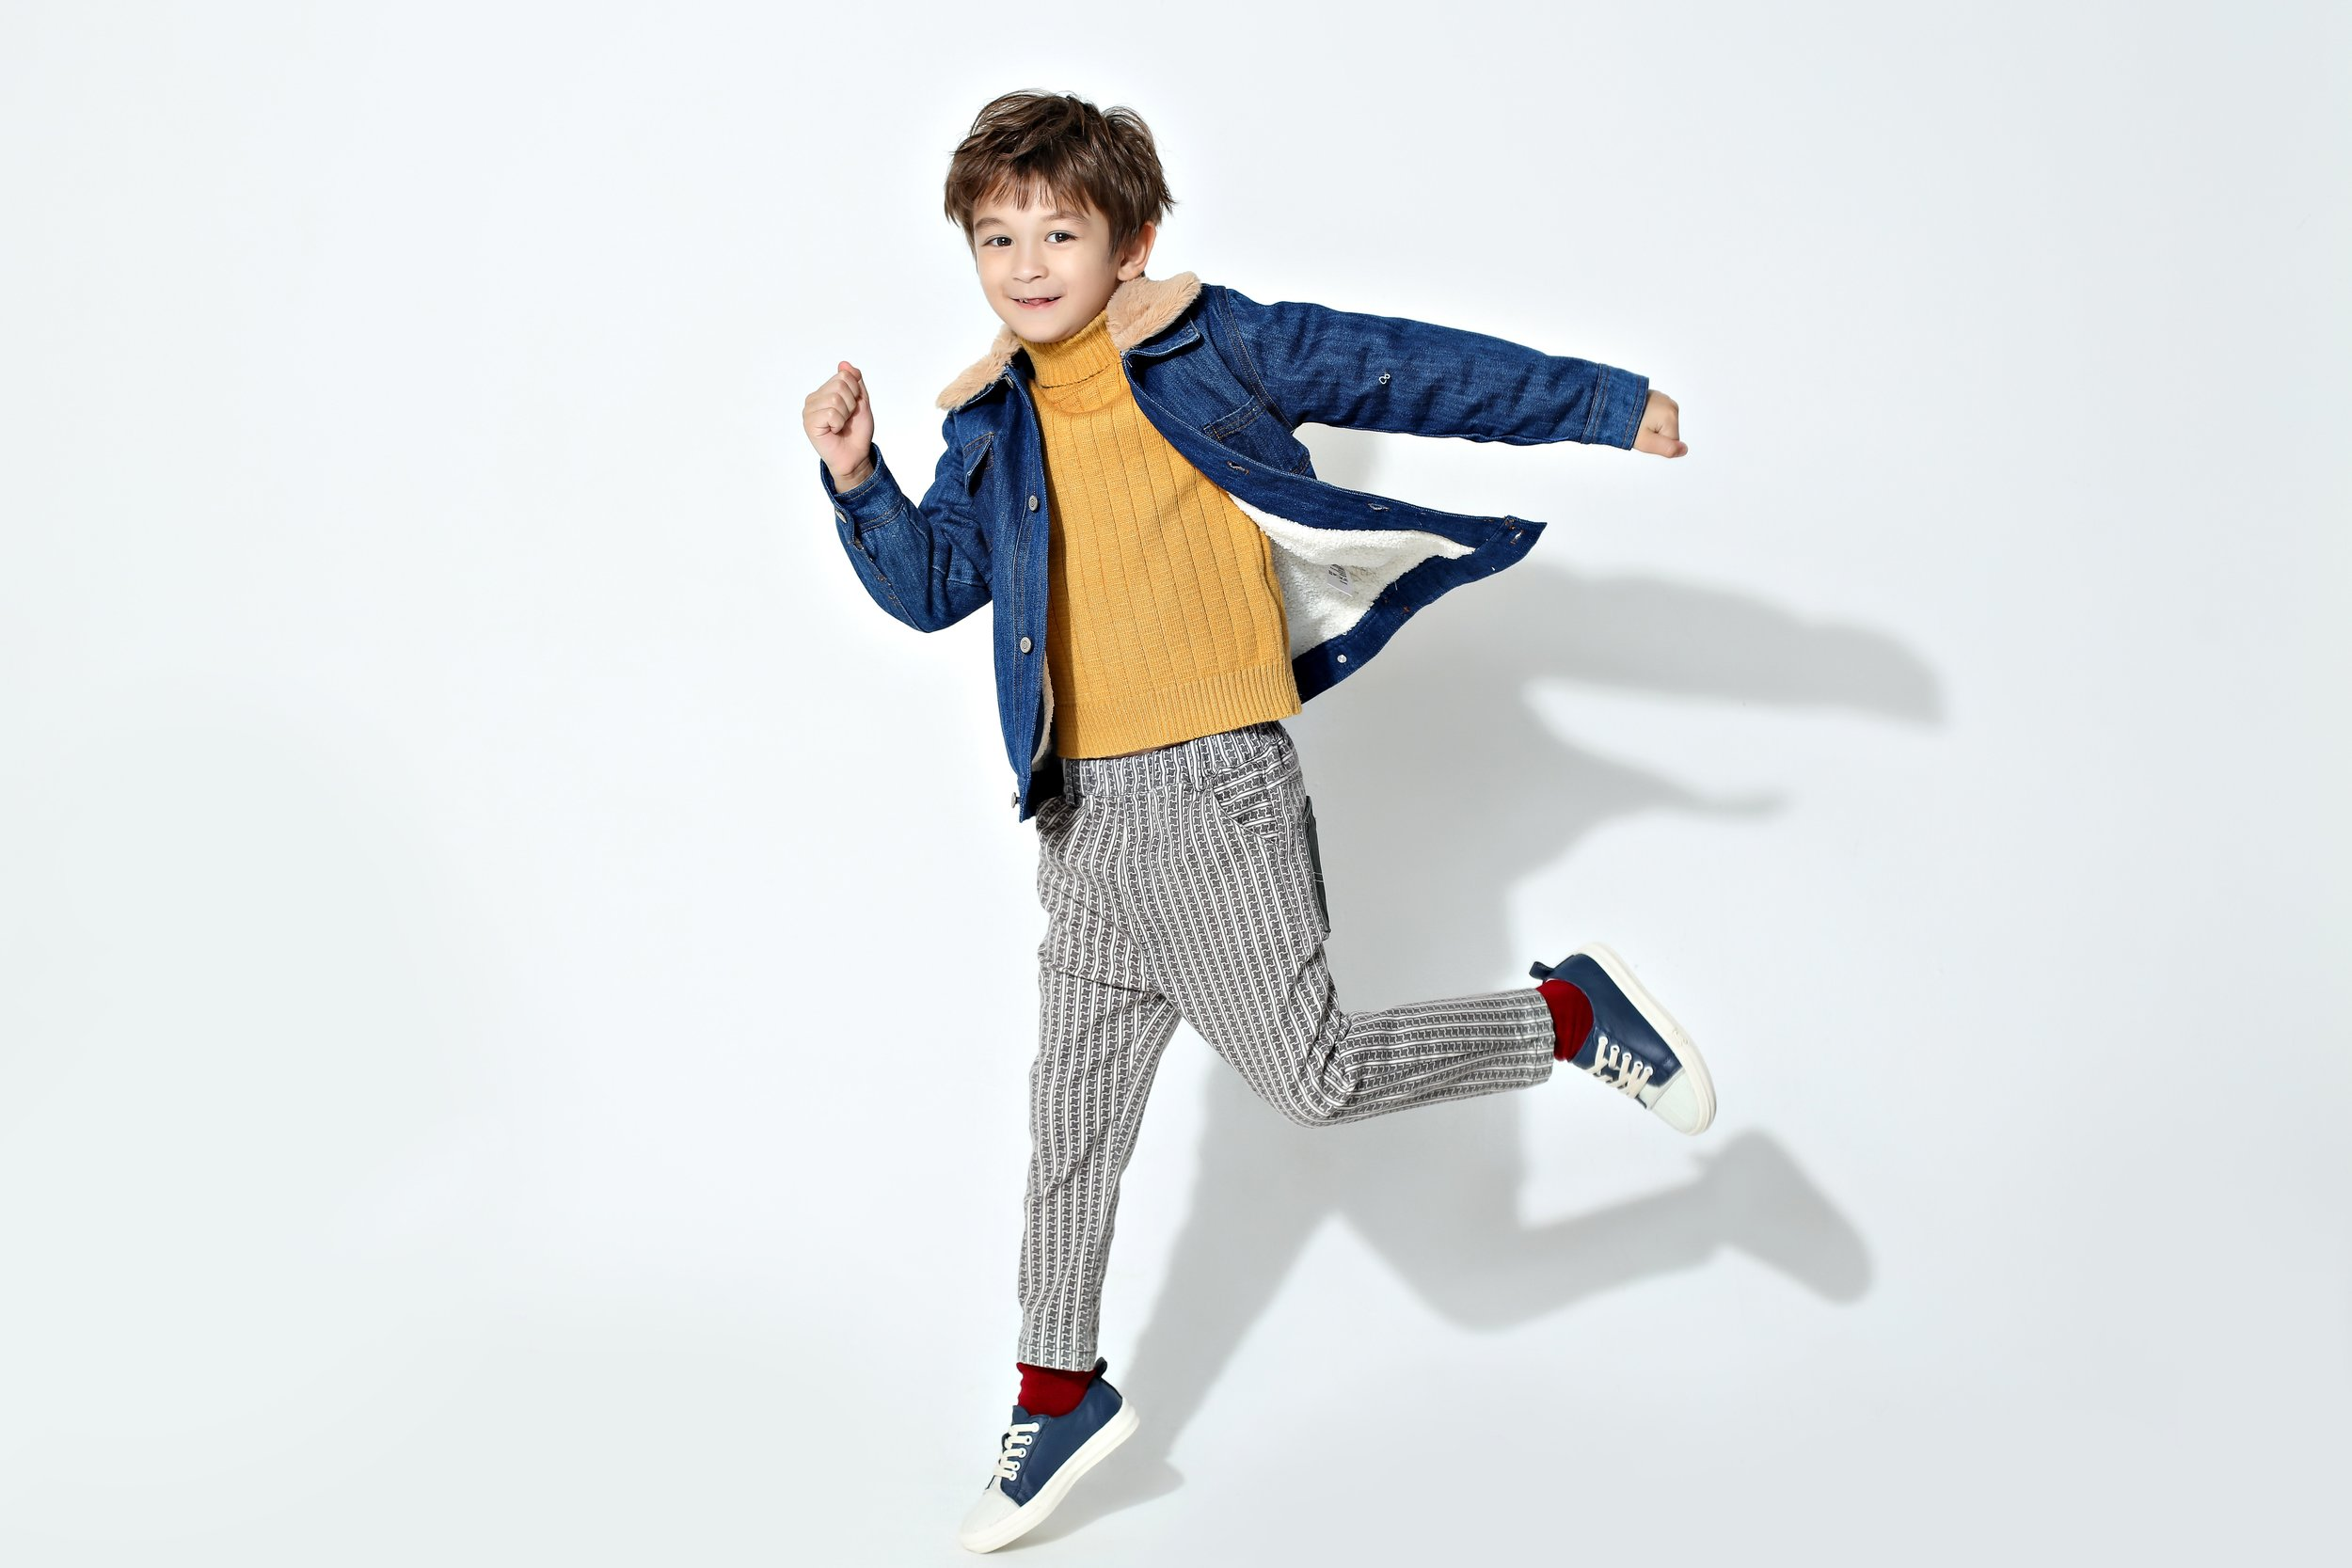 adorable-boy-child-1705234.jpg